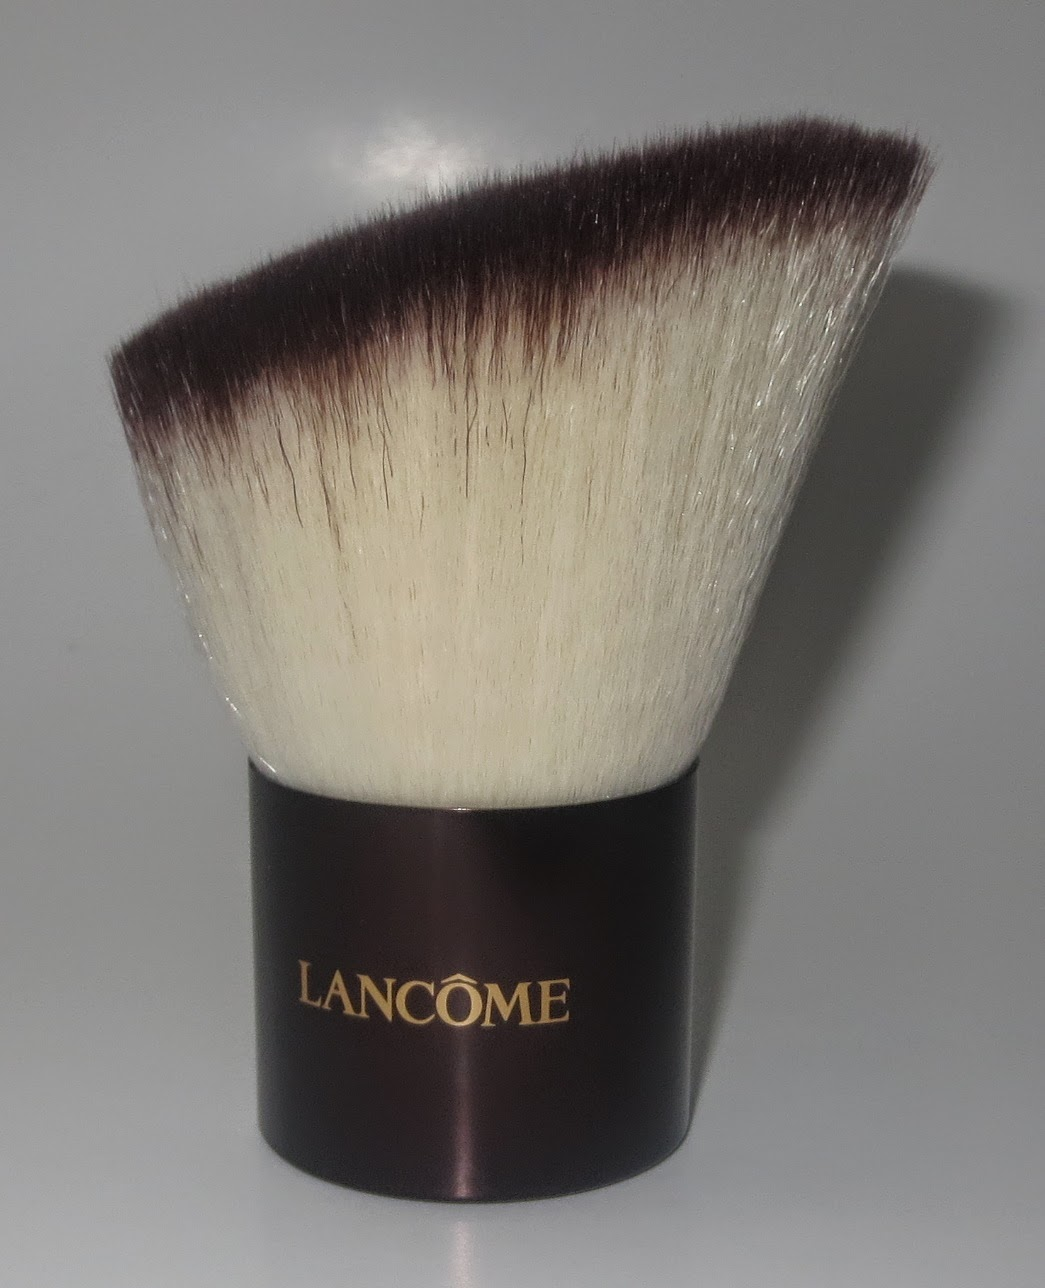 Lancôme Golden Riviera Collection Star Bronzing Brush